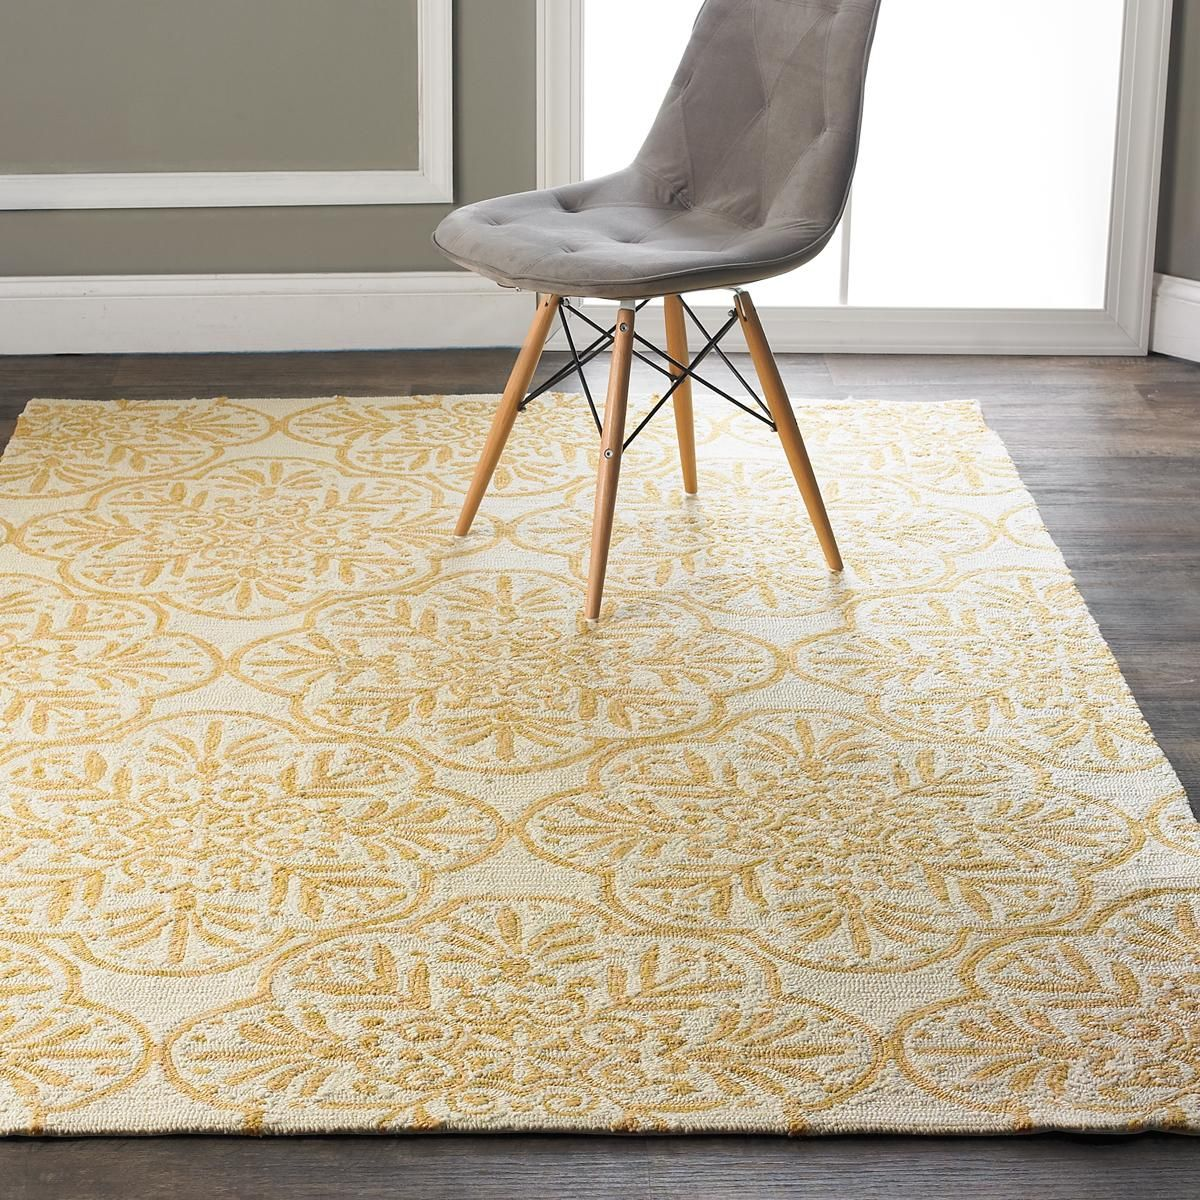 Golden Medallions Indoor Outdoor Rug Indoor Outdoor Rugs Area